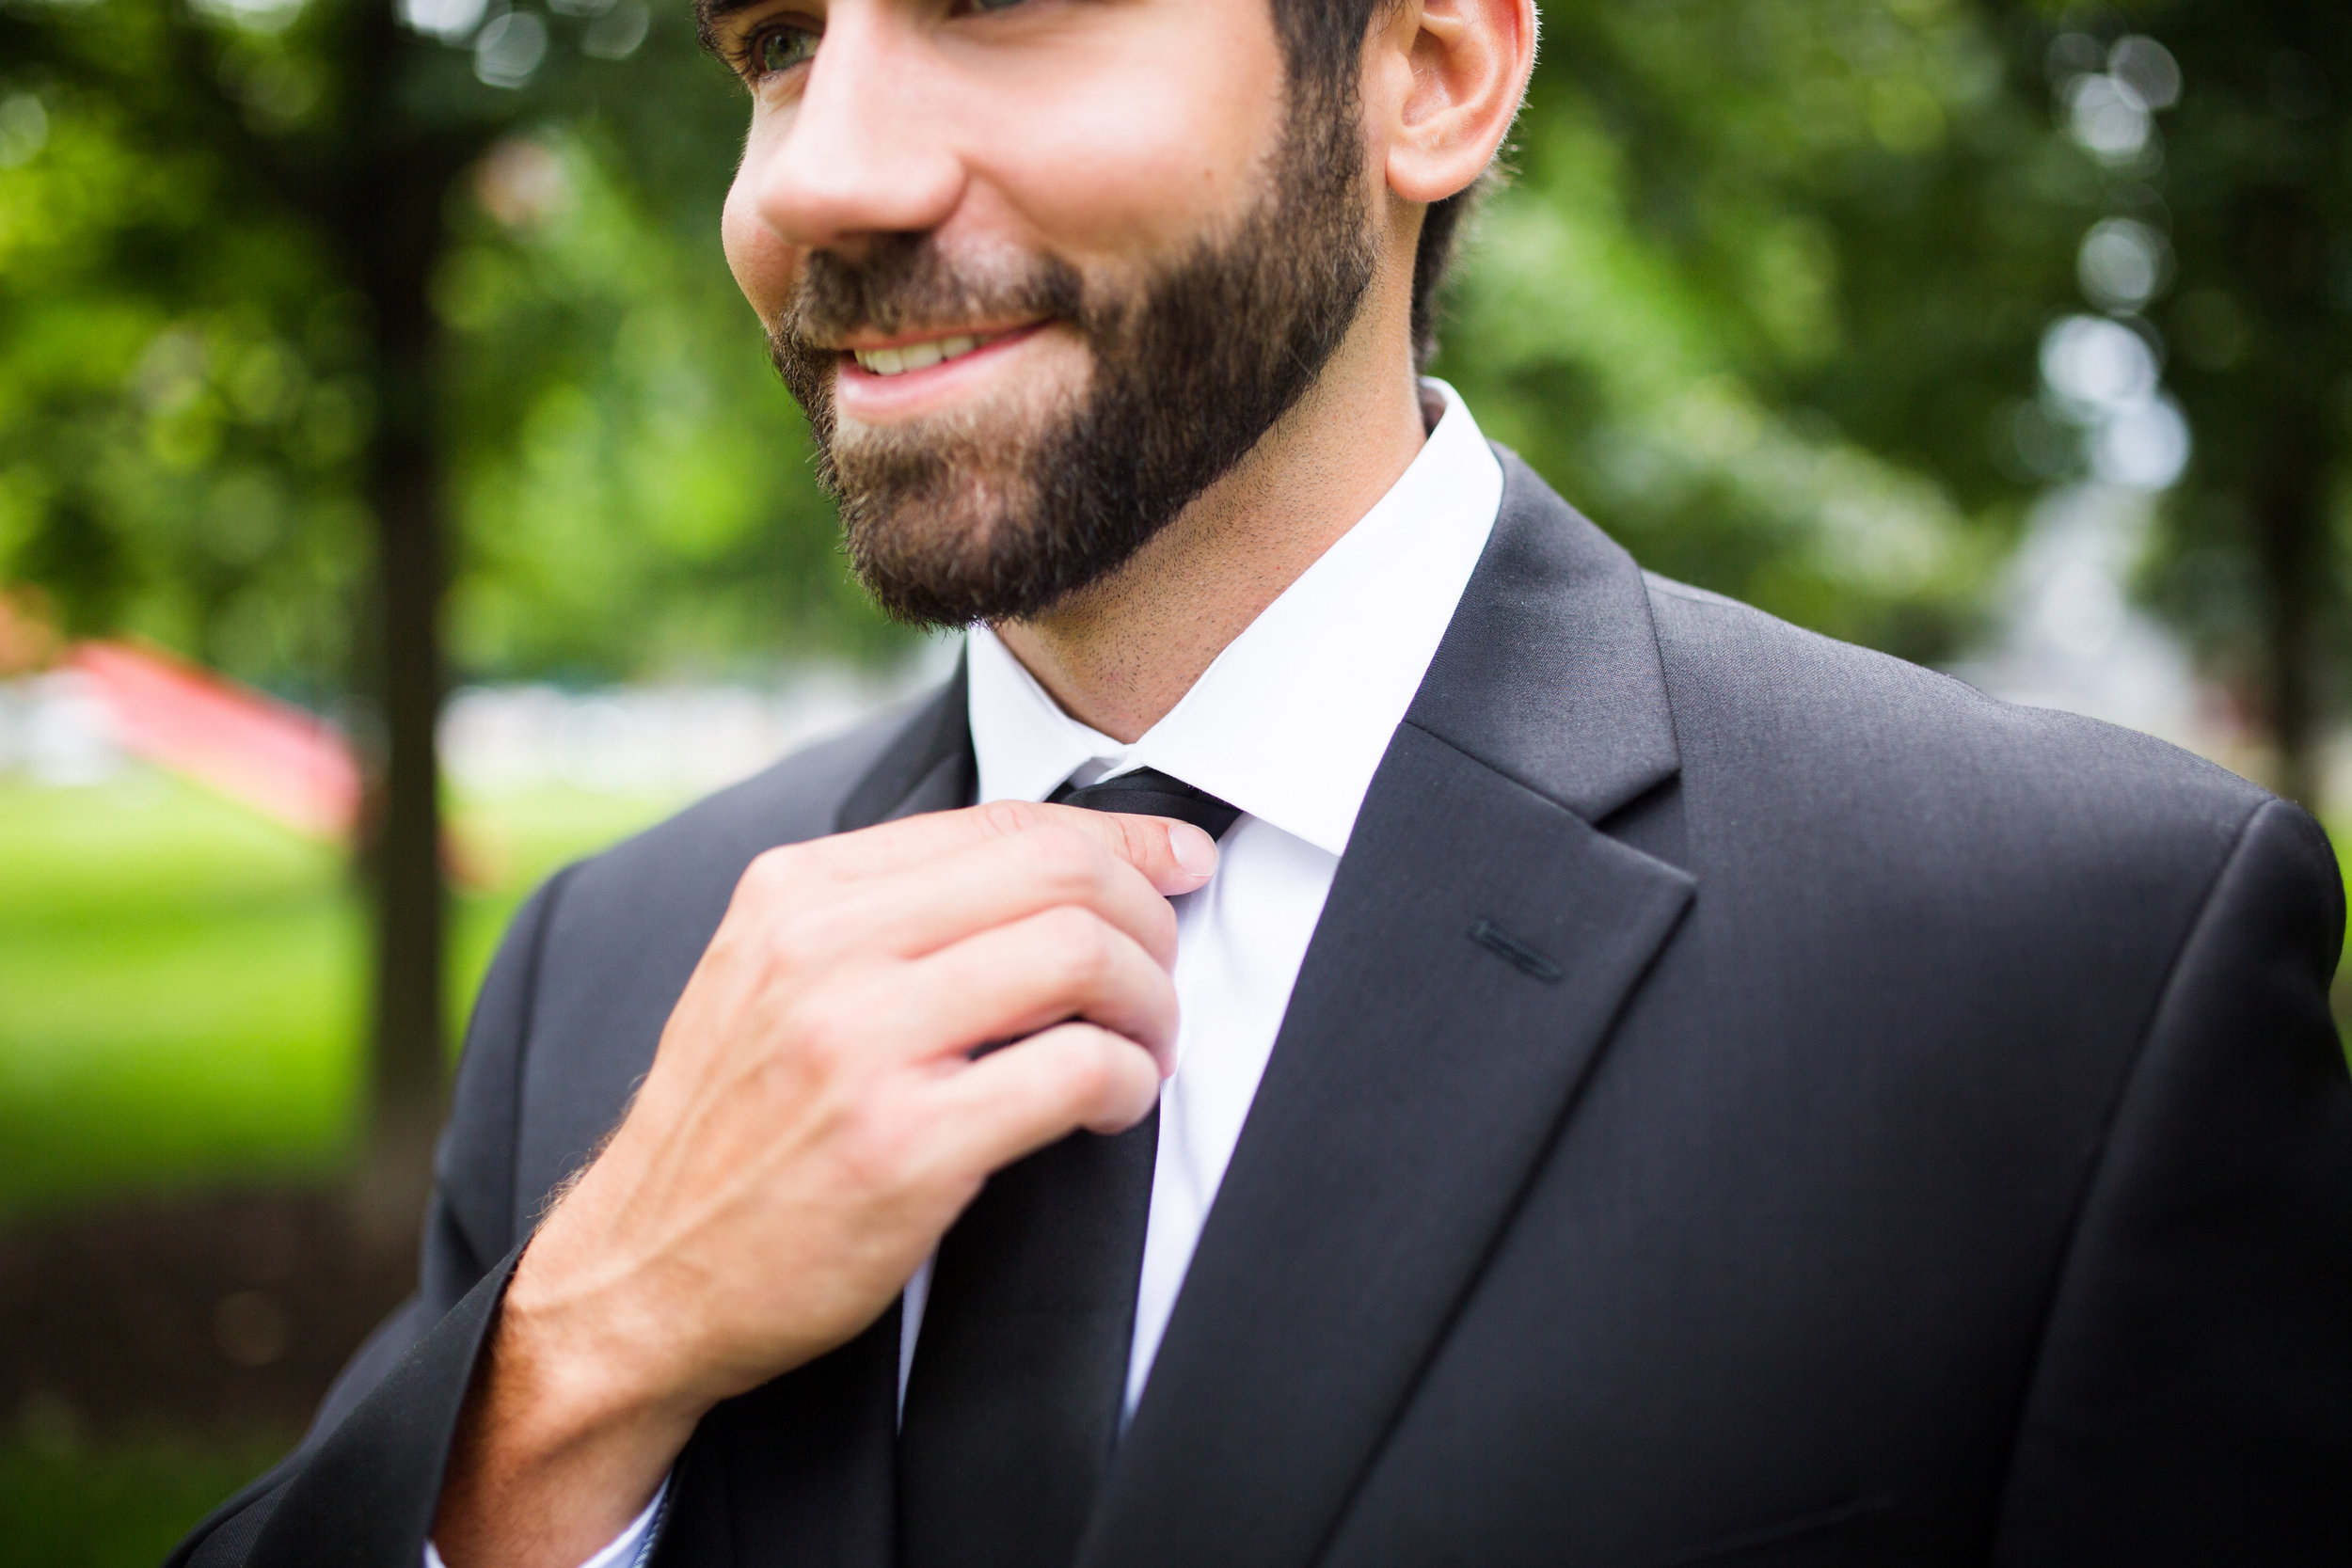 Kaylie + Travis | Sixpence Events wedding planner in the midwest | Studio KH photography | groom waiting for first look close up | groom in black suit with black tie and beard